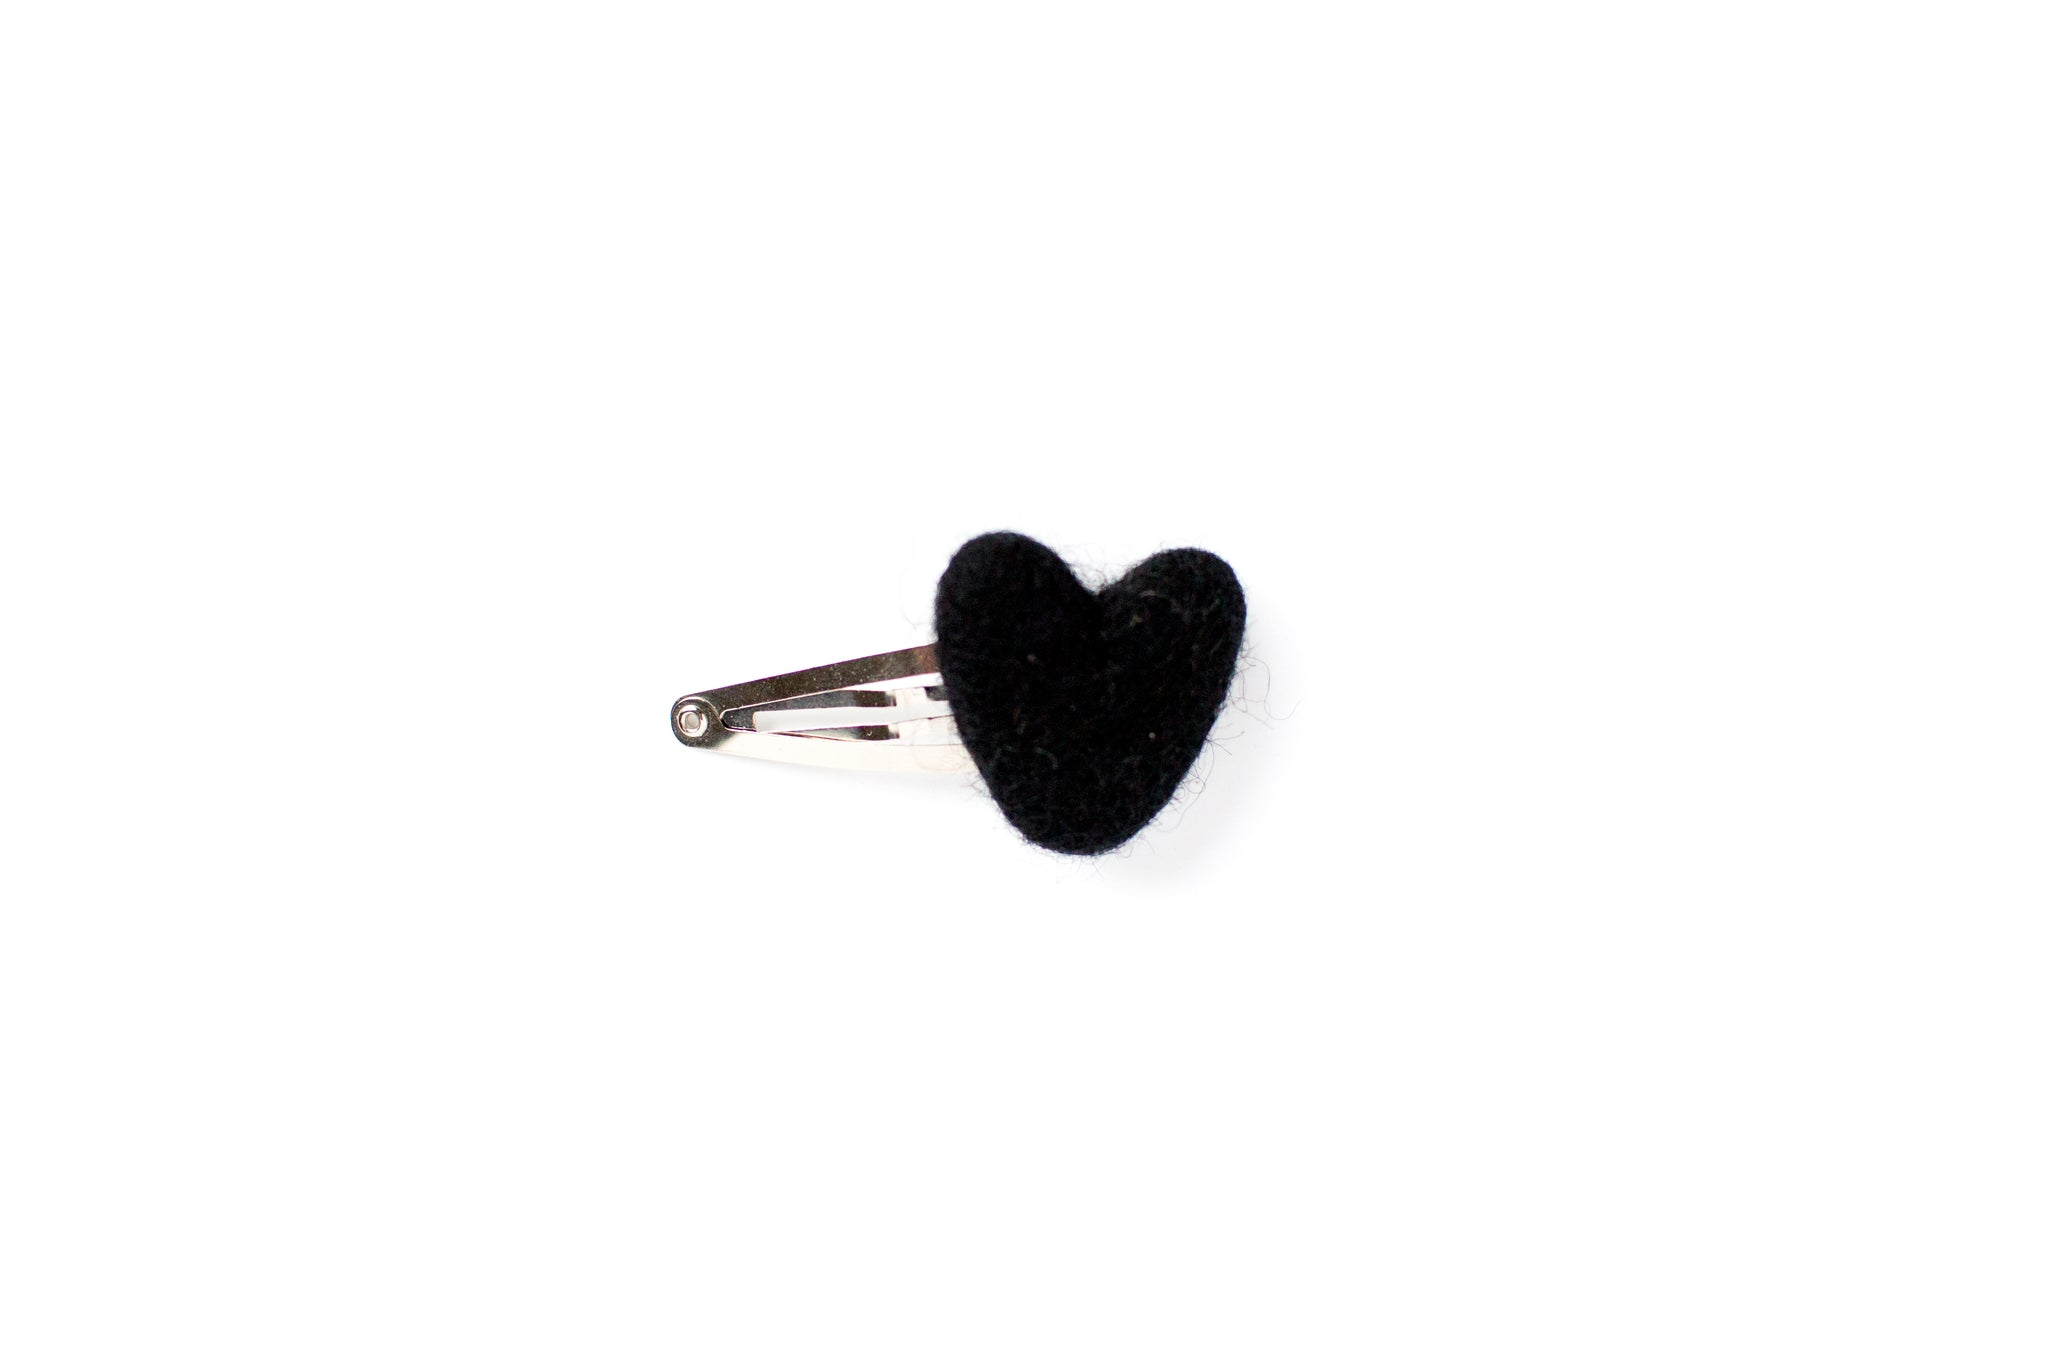 Black felt heart on a snap clip